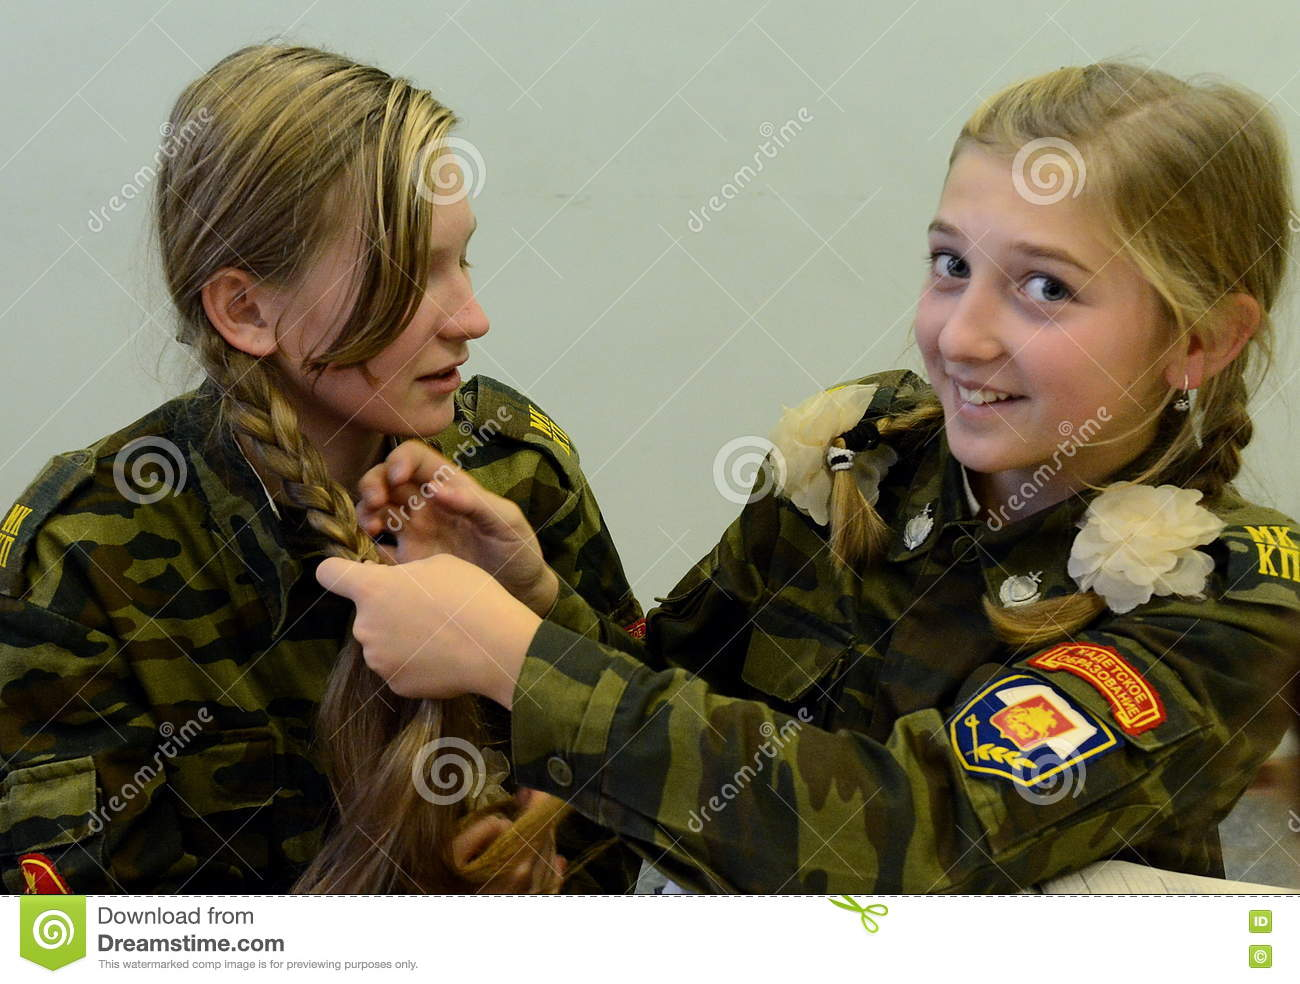 The Unknown Girl Of The Cadet Corps  Editorial Stock Image - Image